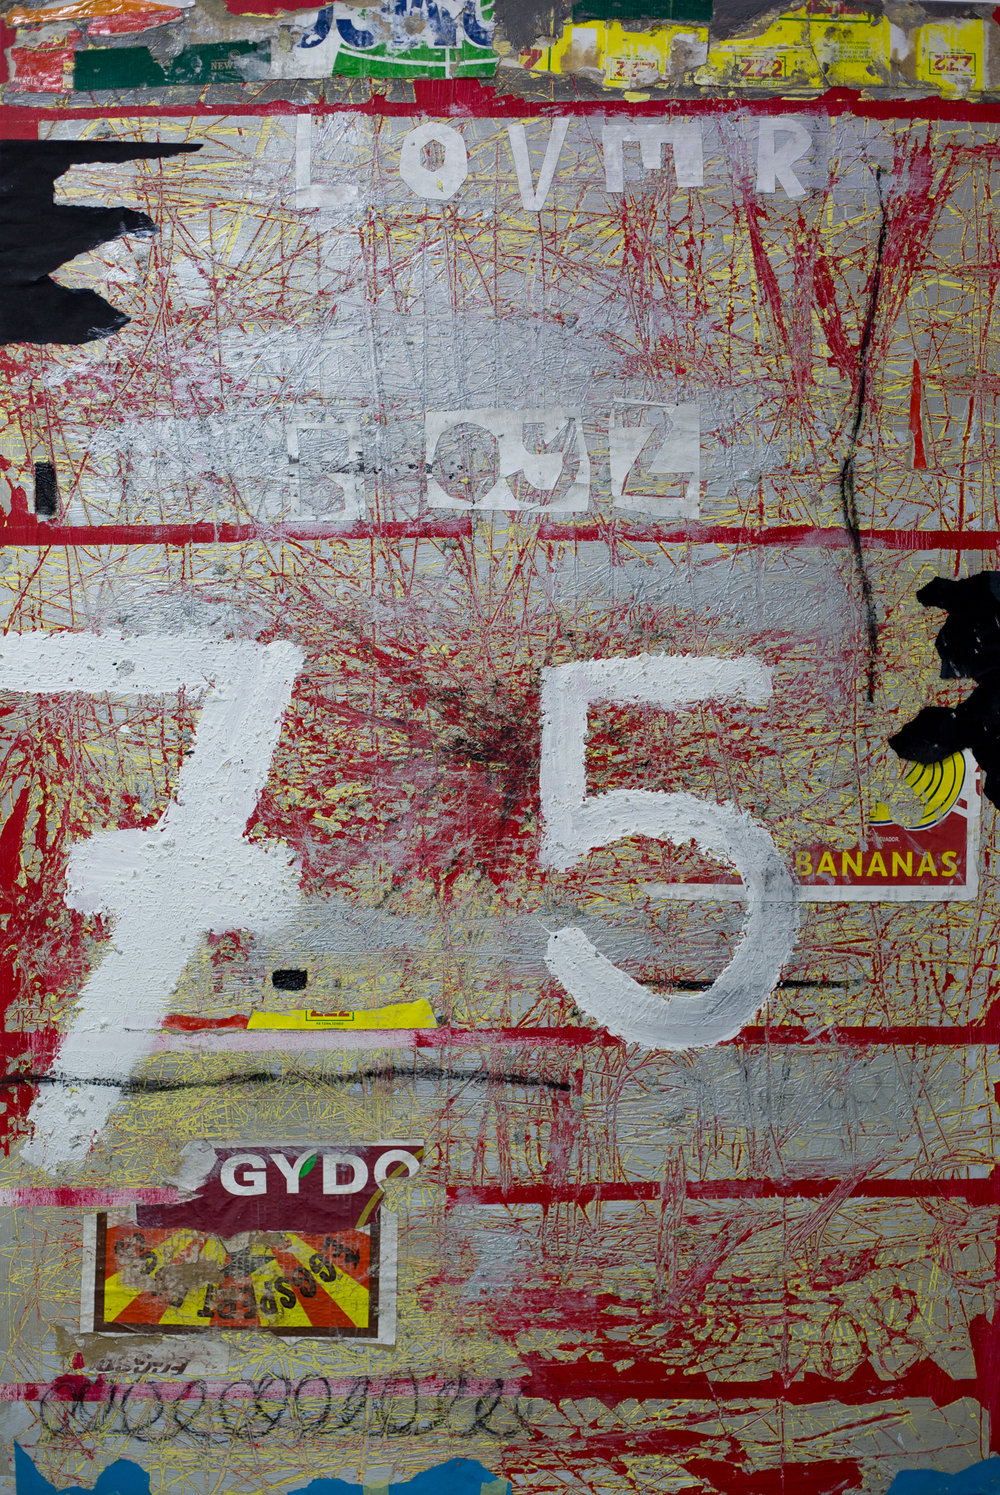 ' Getting Burned in the Day Light II'   Gideon Appah  Acrylic, wood glue and charcoal on canvas  975 x 25 x 149 mm  R 25 000.00 excl. vat